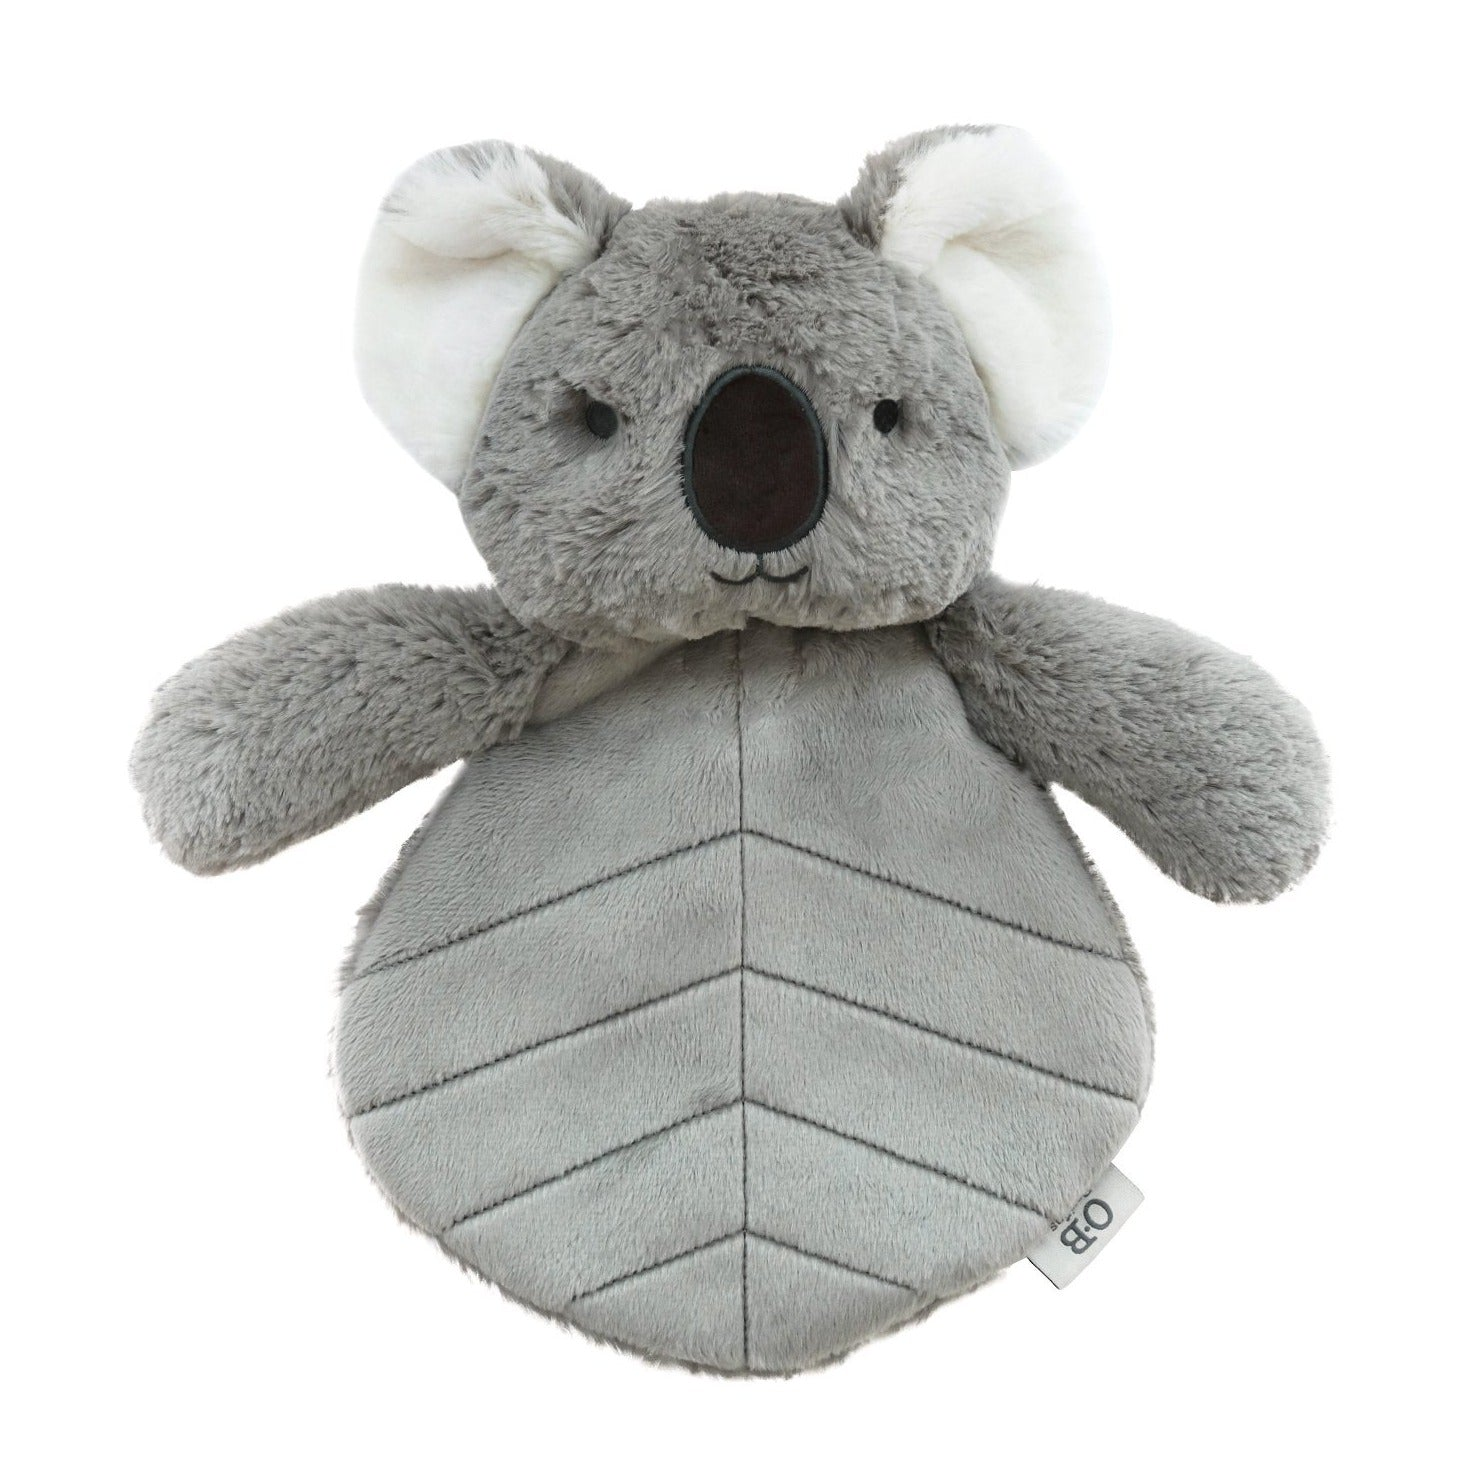 O.B. Designs: Grey Koala Baby Lovey